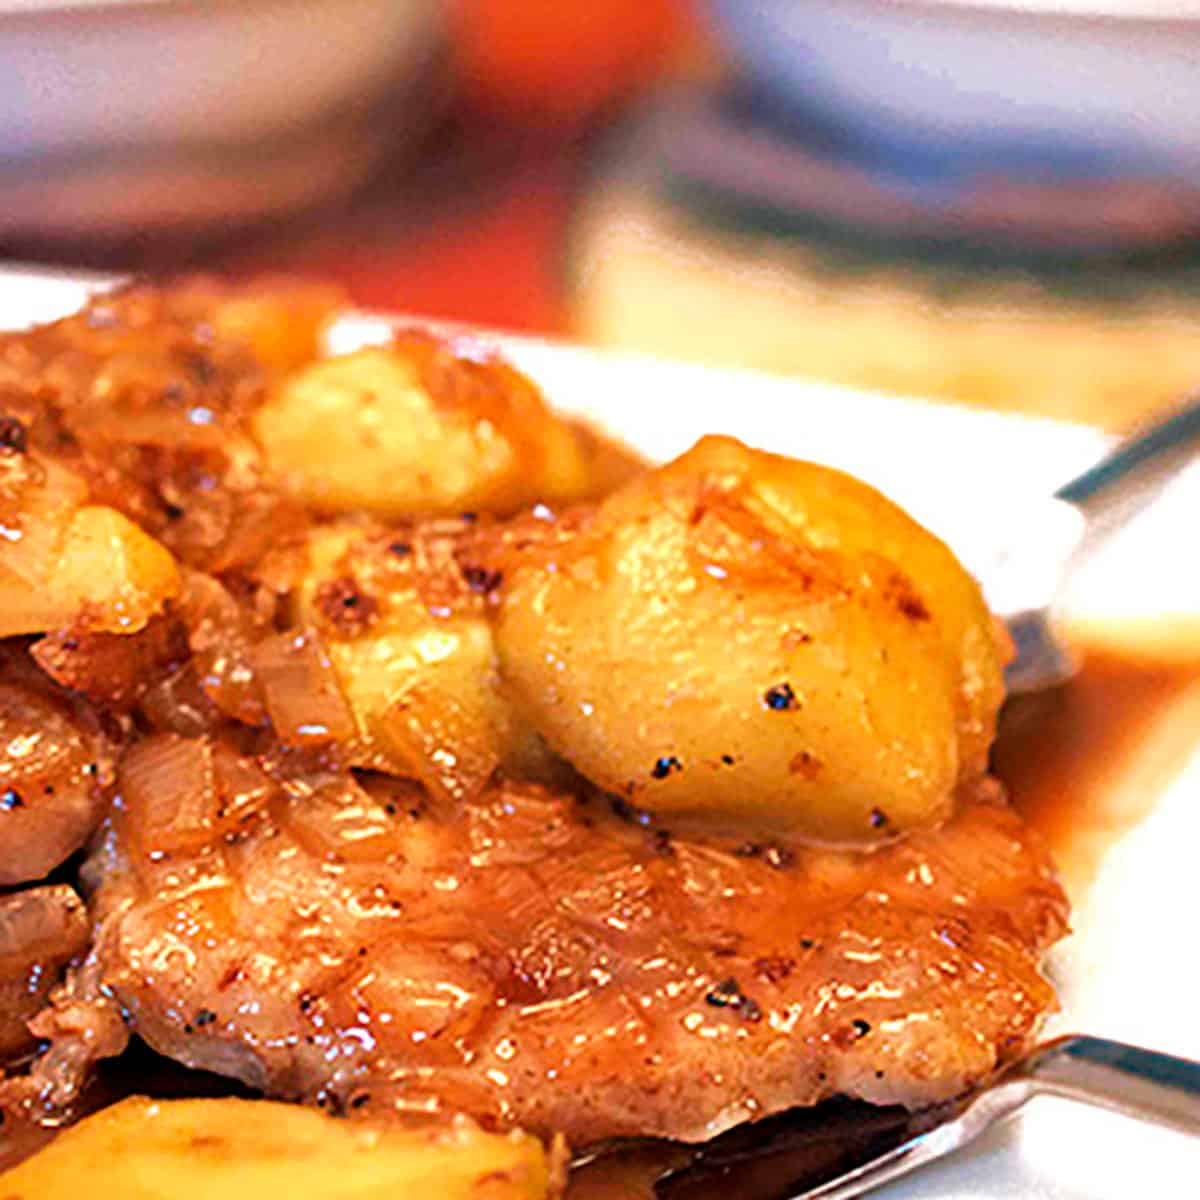 A cooked pork chop with a slice of apple.